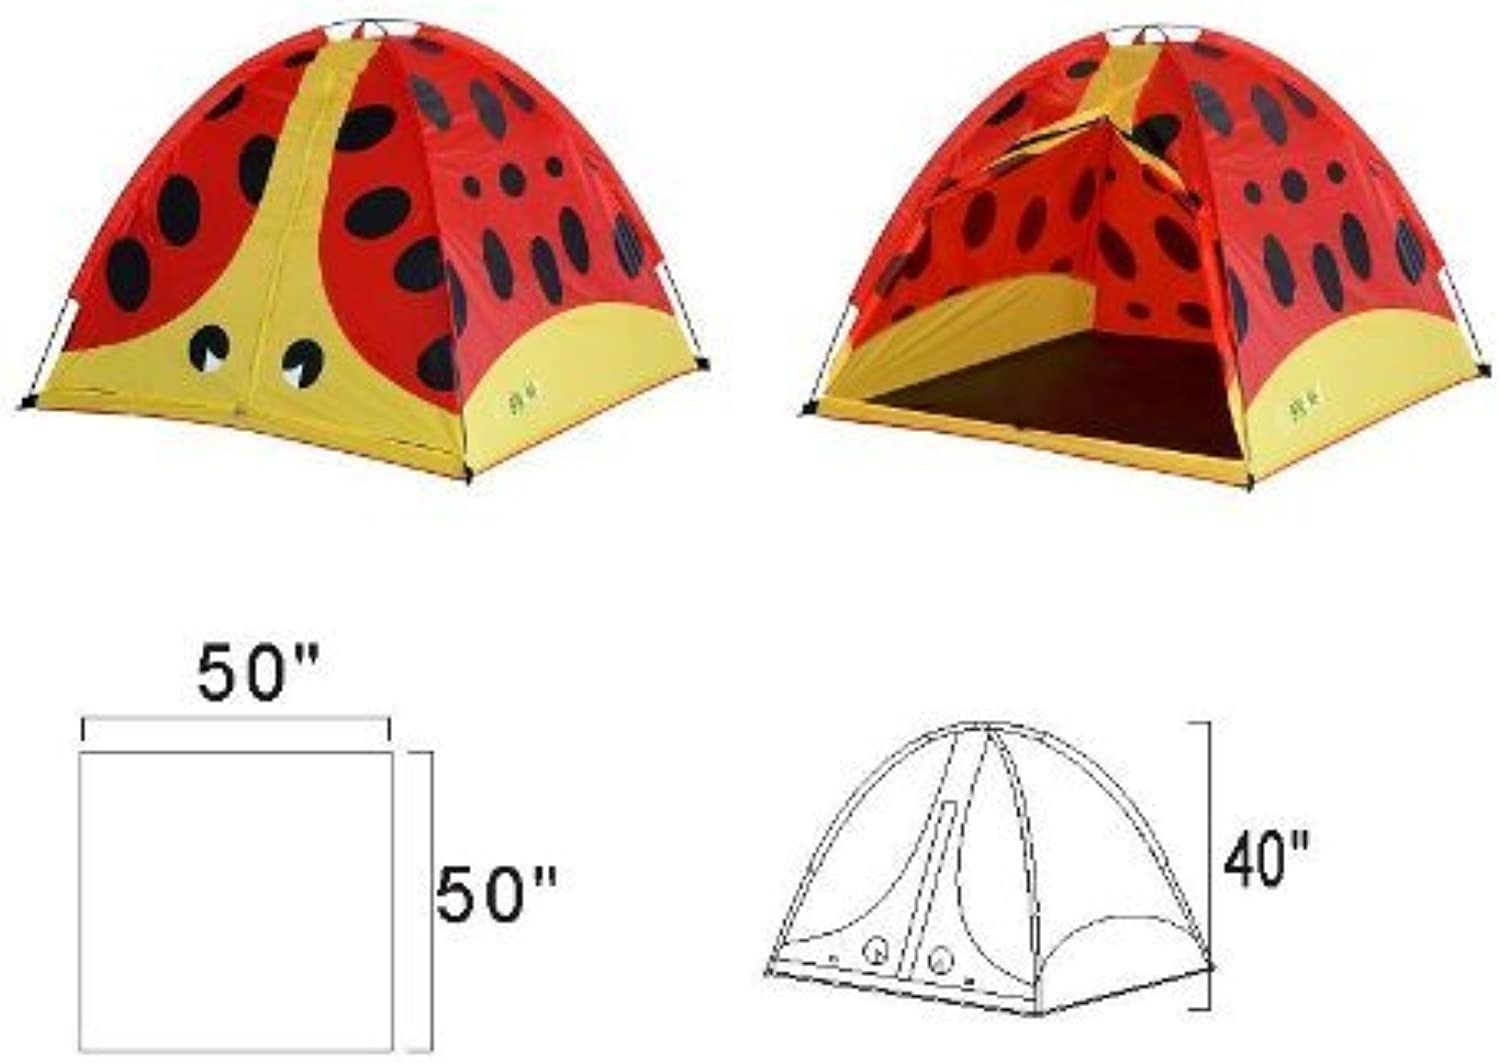 Giga Tent Baxter Beetle Play Tent by Gig a Tent [Toy]